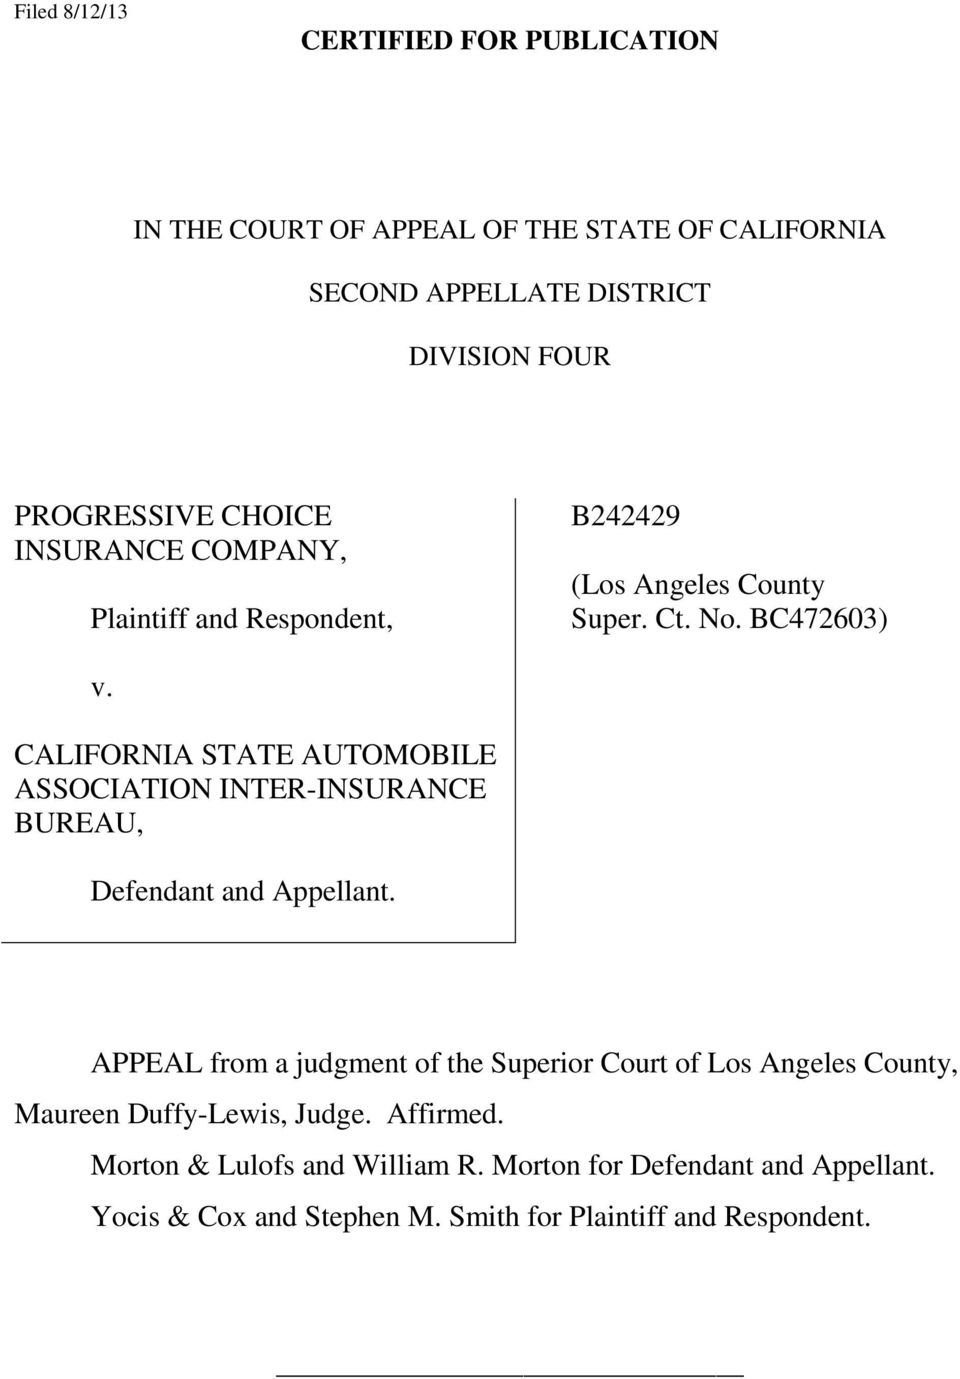 CALIFORNIA STATE AUTOMOBILE ASSOCIATION INTER-INSURANCE BUREAU, Defendant and Appellant.